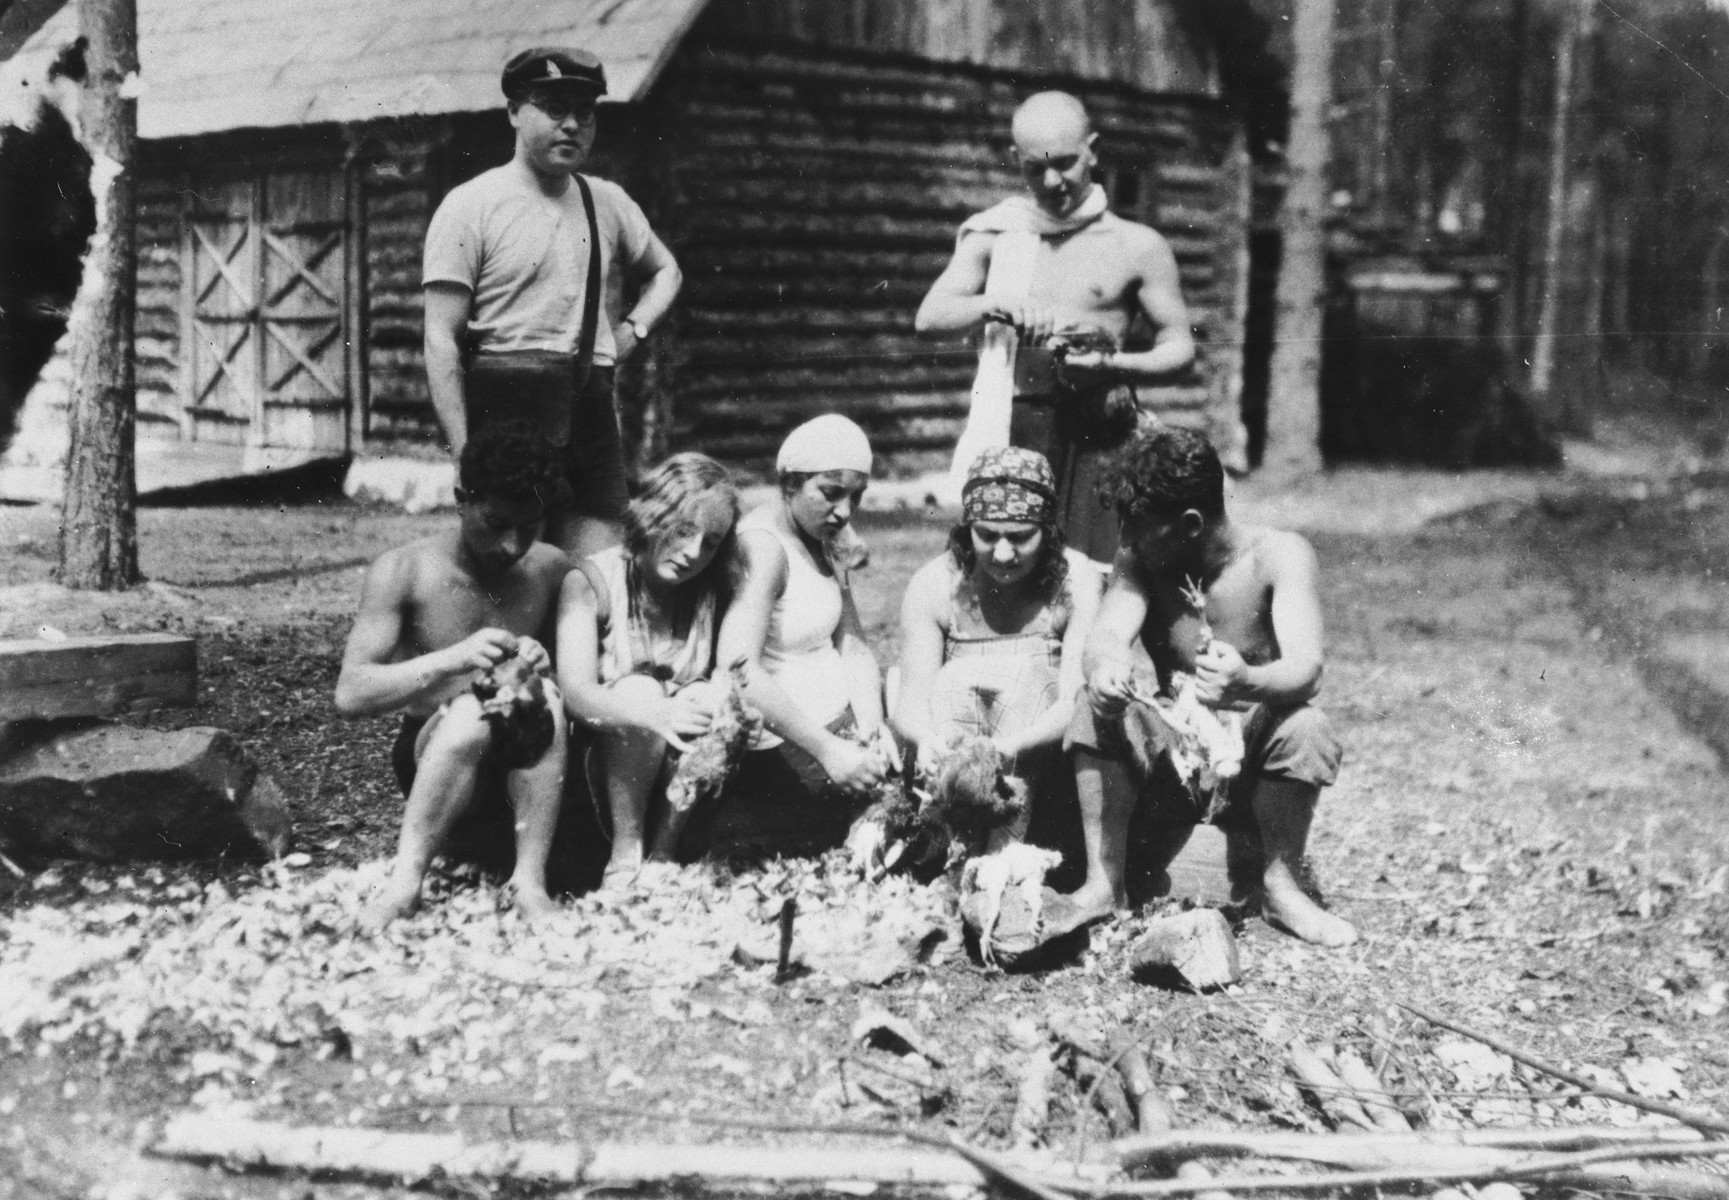 A group of young people pluck chickens outside a log cabin in Narocz, Poland.